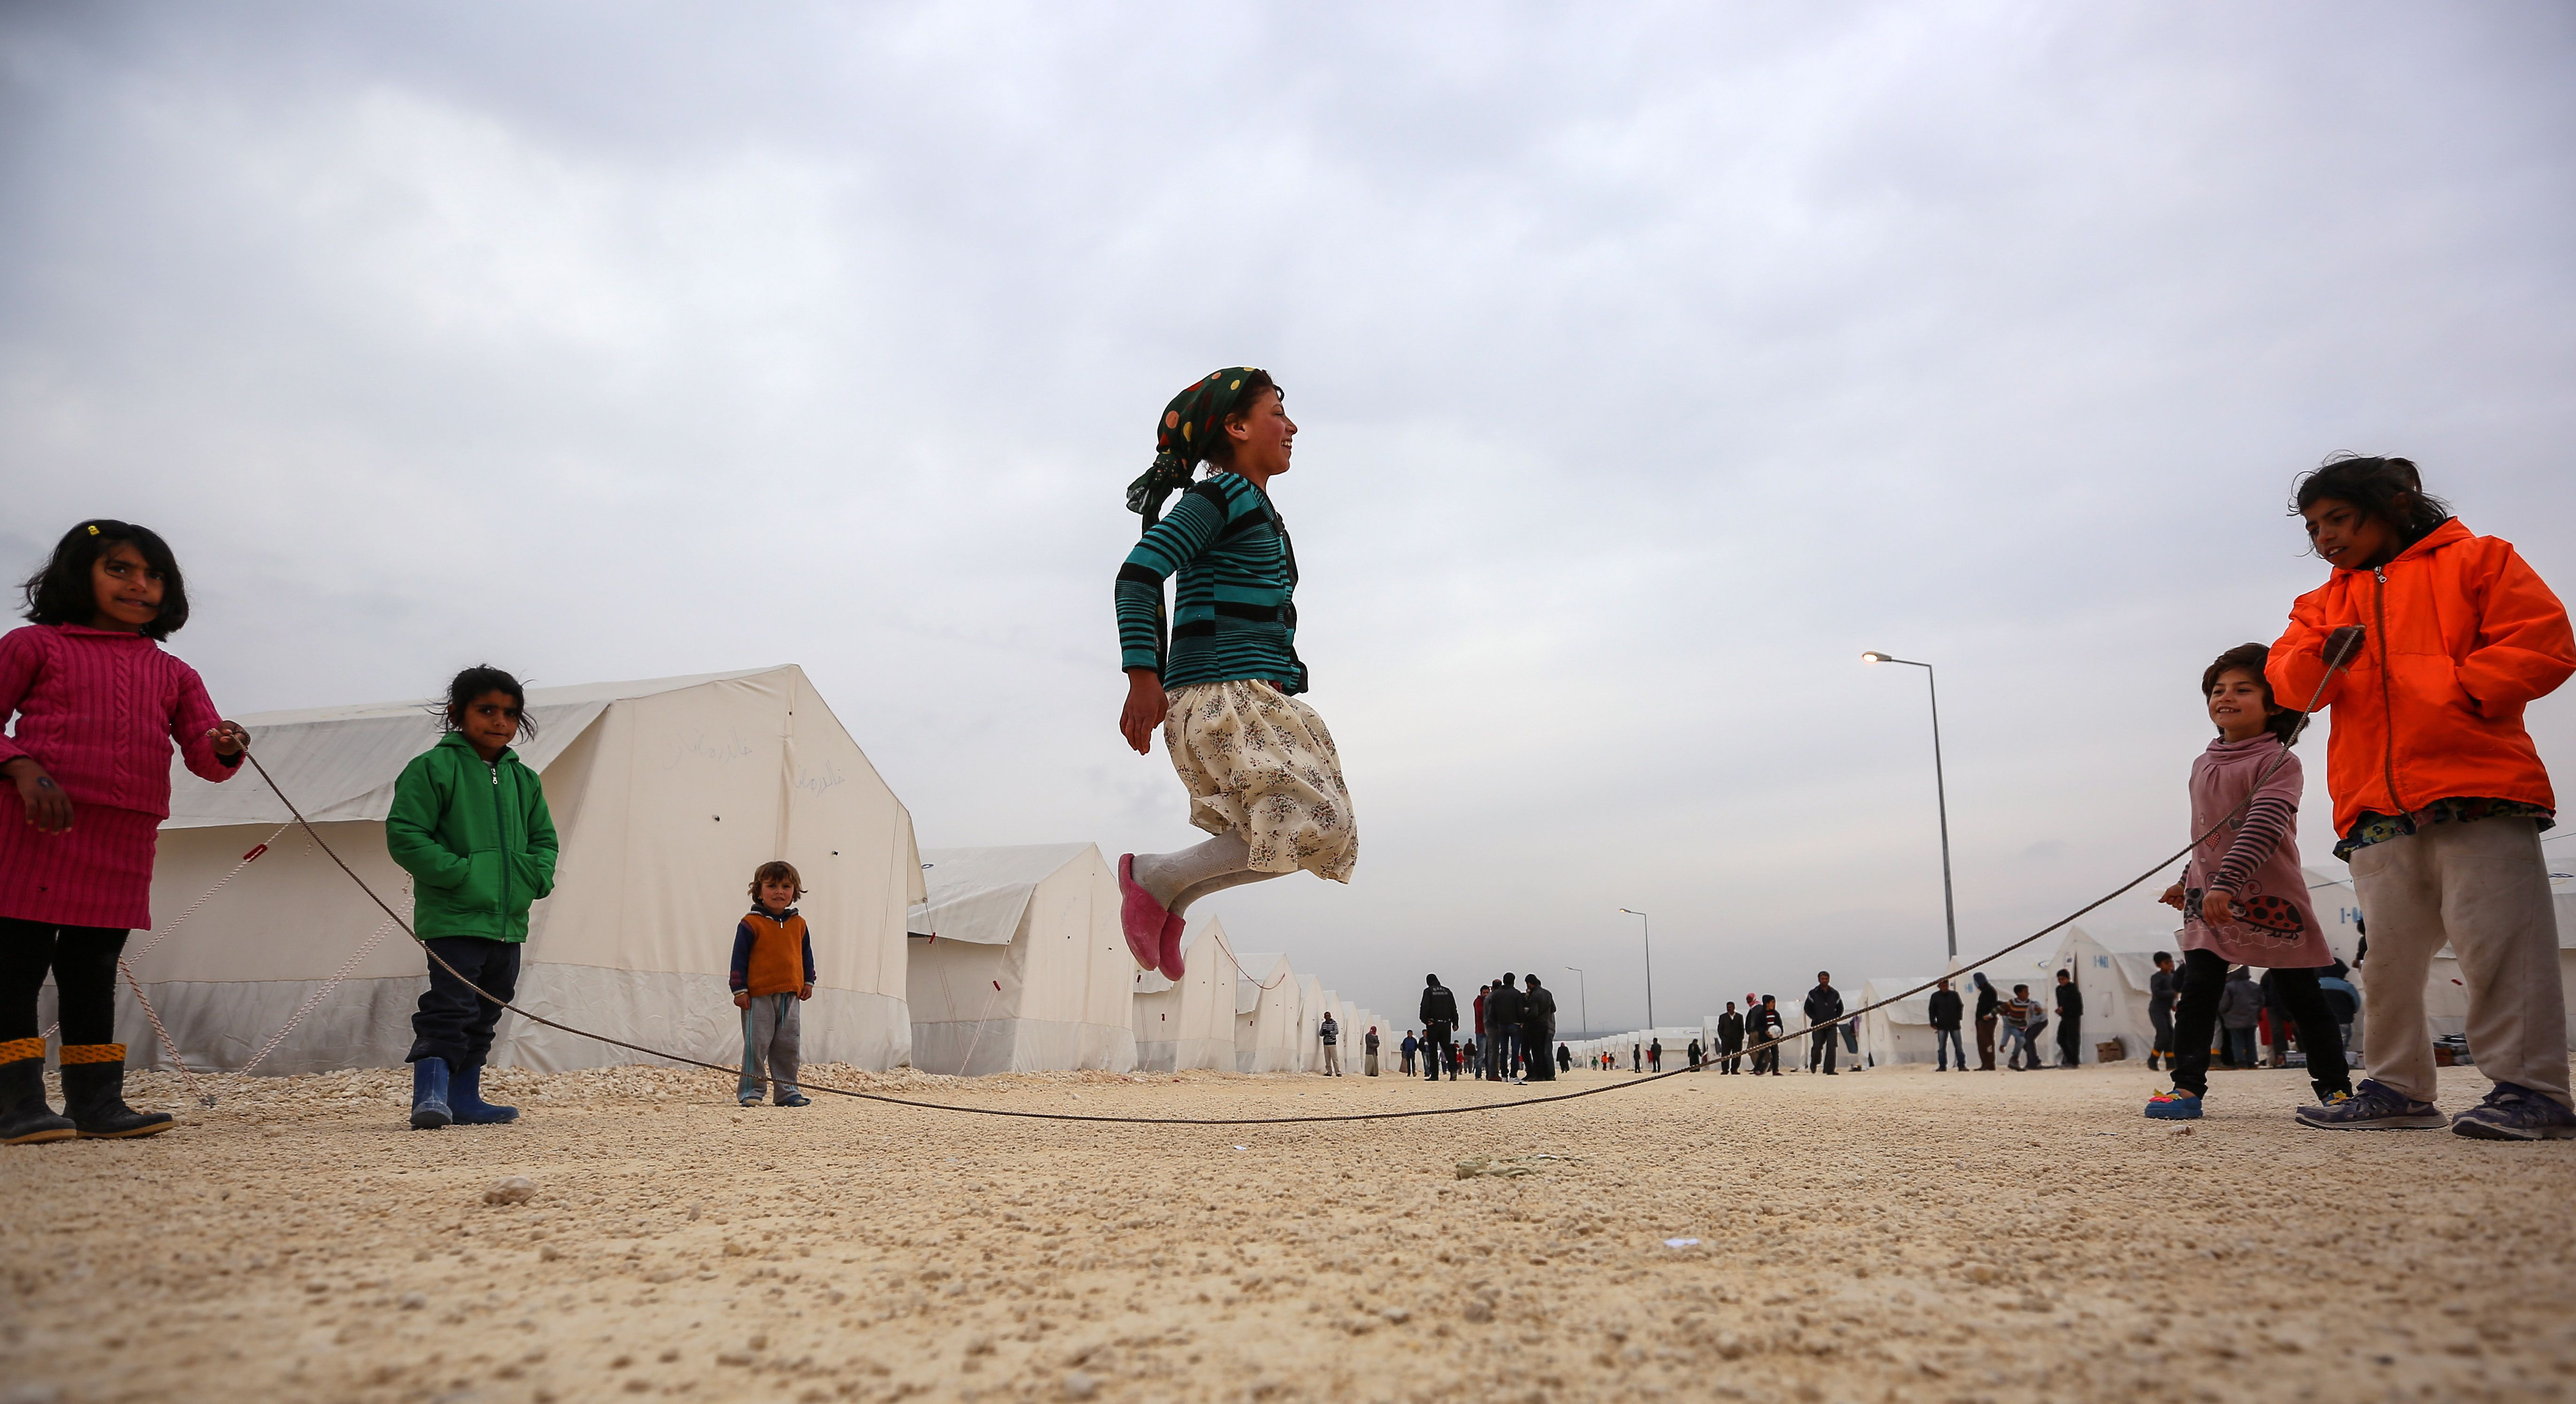 Syrian refugee children who fled violence in Syrian city of Ayn al-Arab or Kobani play their tents in Turkey's newly set-up camp in the border town of Suruc, Turkey, Friday, Jan. 30, 2015. The 35,000 people capacity camp is the biggest refugee camp in Turkey. About 200,000 people arrived in Turkey since the start of fighting between Kurdish militia and Islamic State militants mid-September, 2014. (AP Photo/Emrah Gurel)